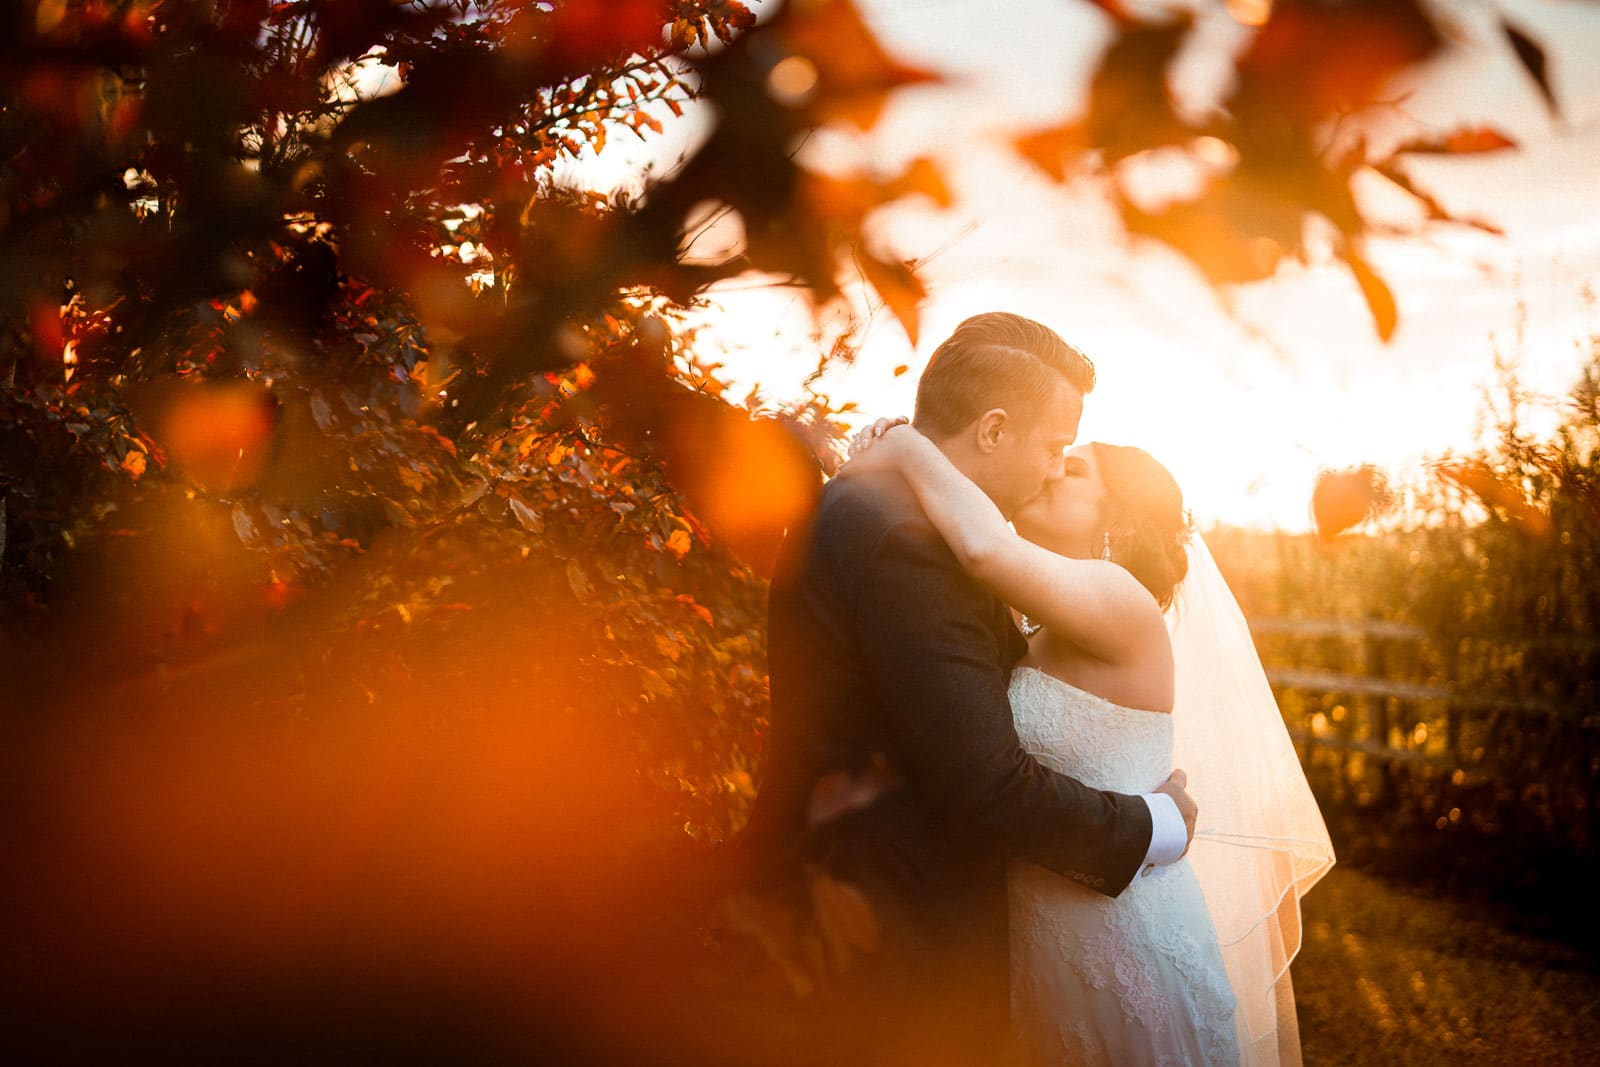 Autumnal wedding photo of a bride and groom kissing